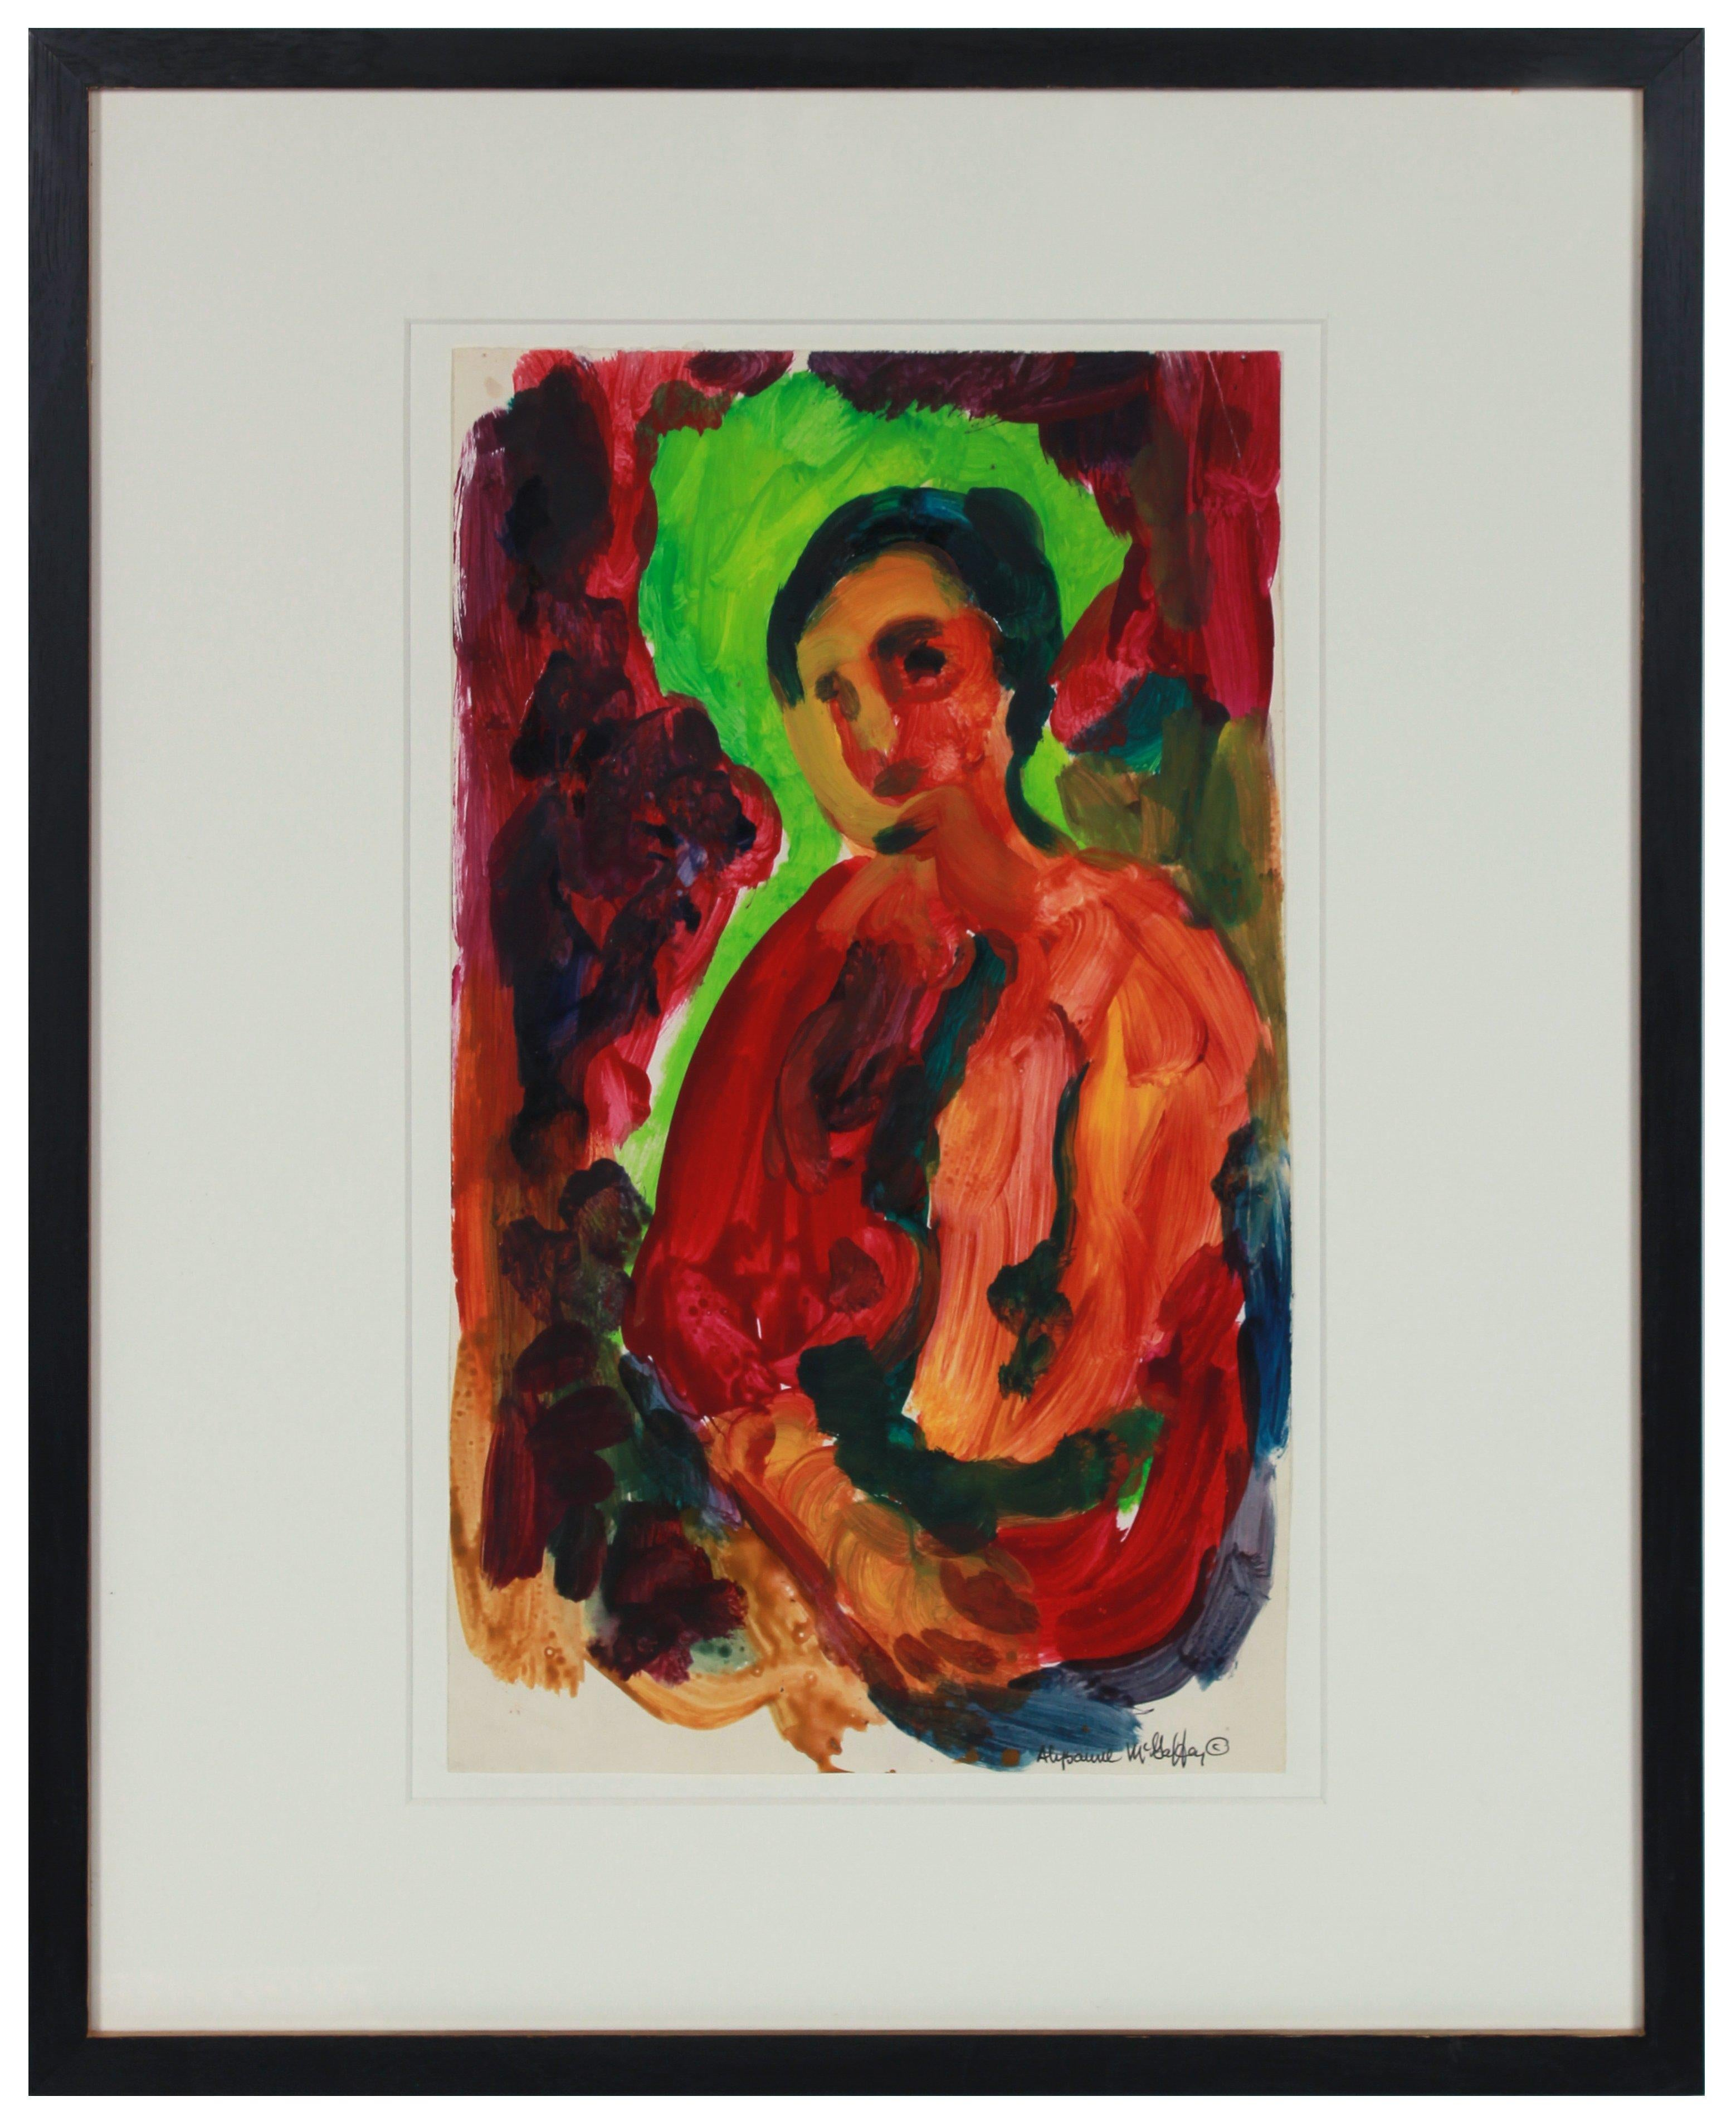 Saturated Red Bay Area Figure 1950-60s Distemper Painting